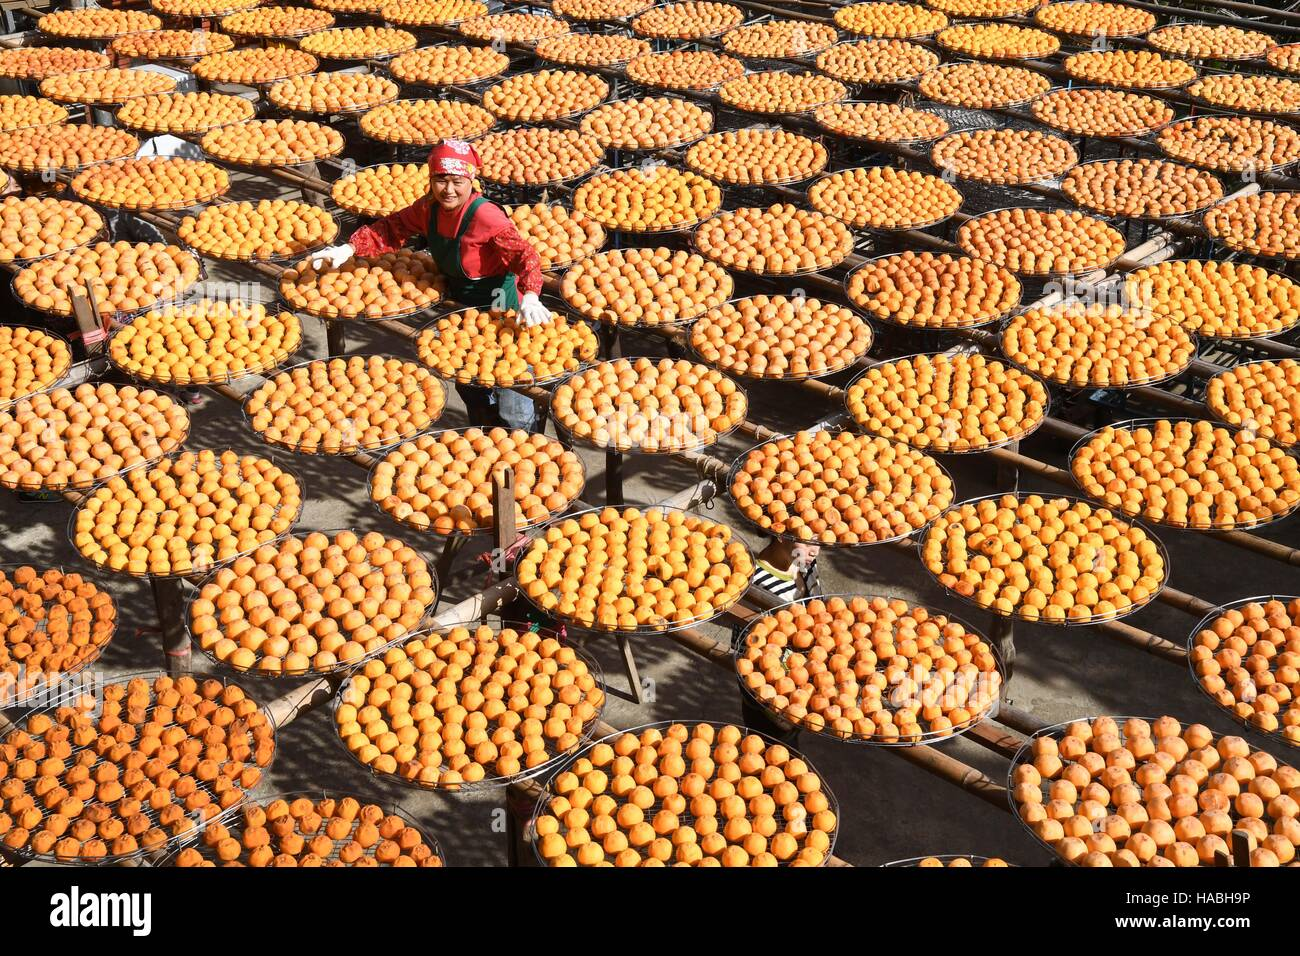 Hsinchu, China's Taiwan. 29th Nov, 2016. A farmer airs persimmons at Hsinchu County, southeast China's Taiwan, - Stock Image